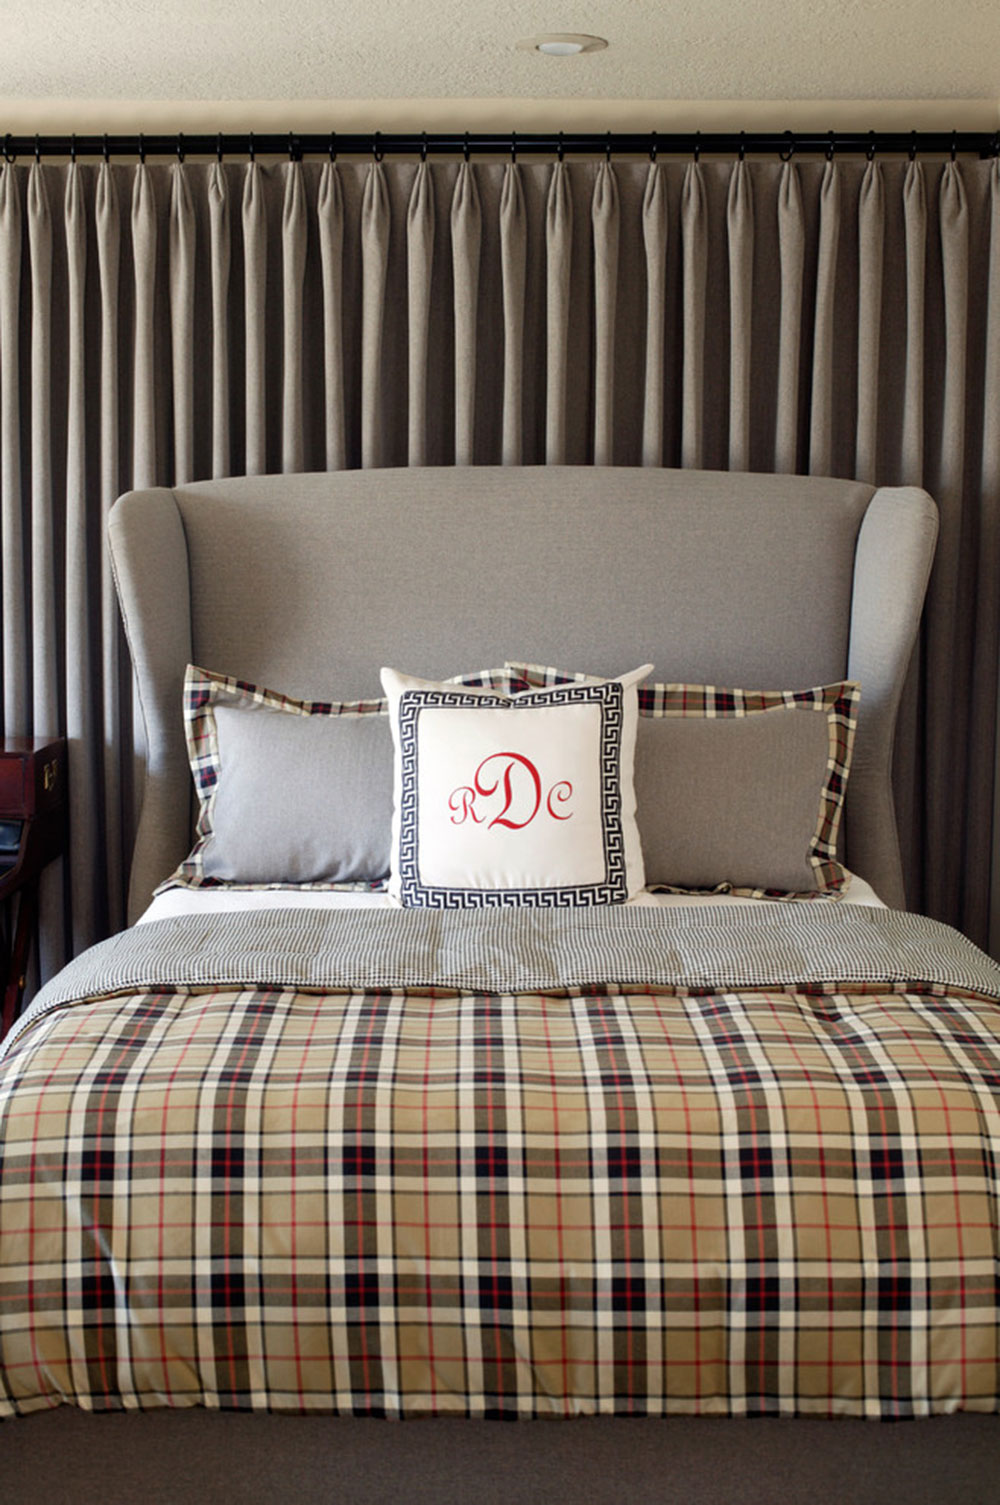 Plaid Home Decor For Everyone11 Everyone